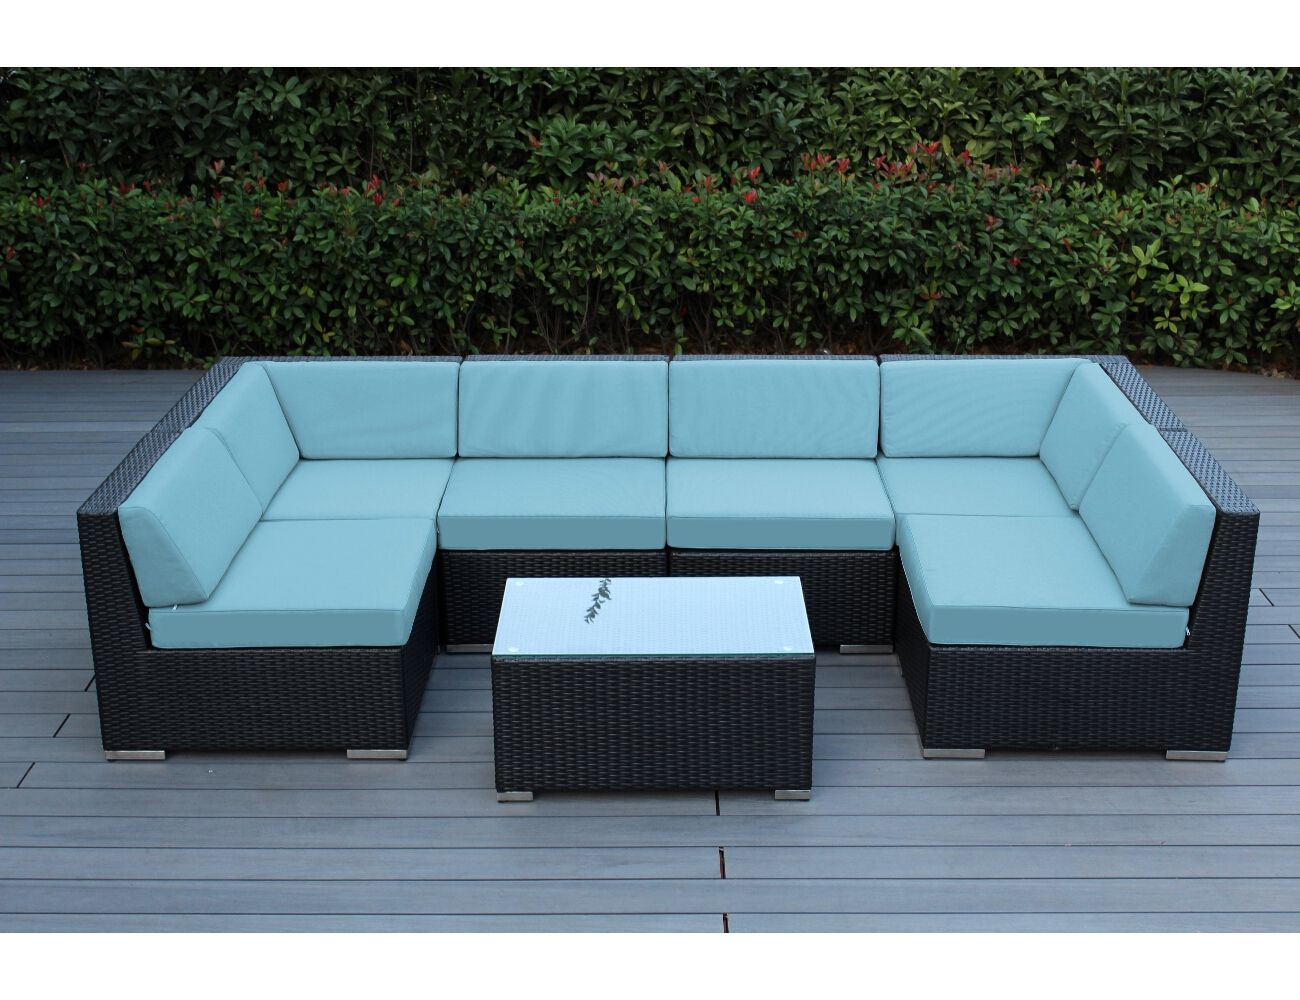 Sunbrella Mineral Blue with Black wicker | Ohana Wicker Furniture | Outdoor Patio Furniture Sets